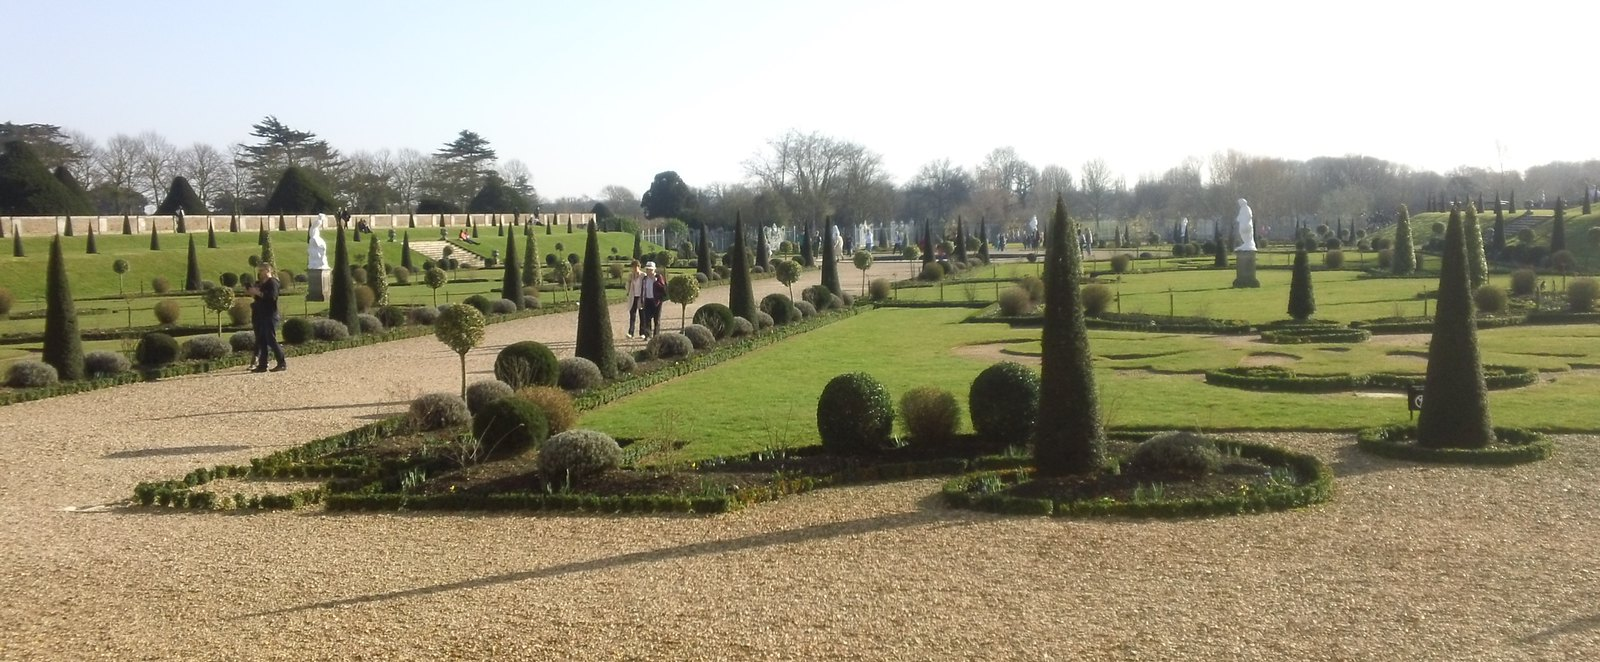 Hampton Court gardens Landscaped view